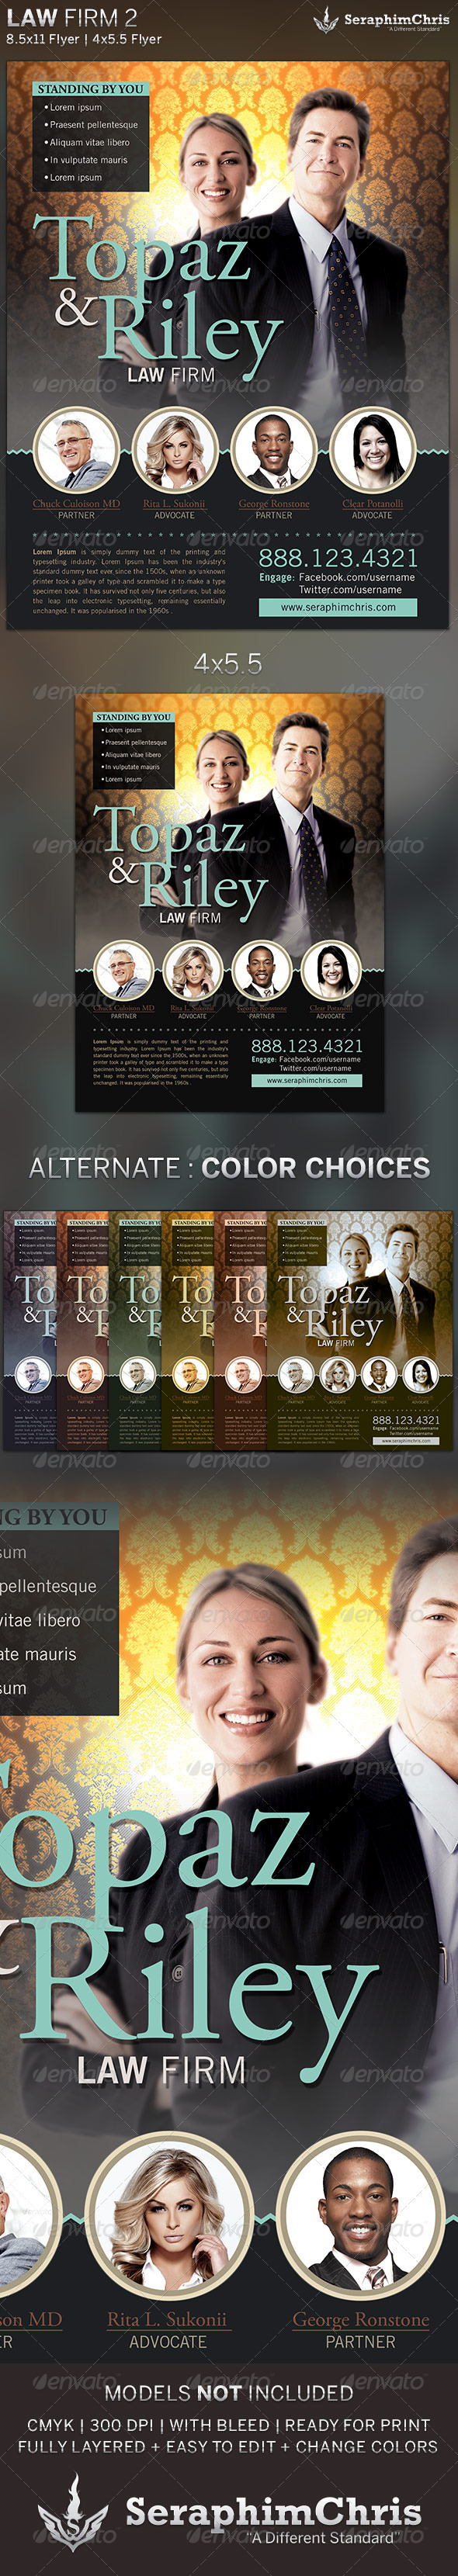 GraphicRiver Law Firm Flyer Template 2 5463976